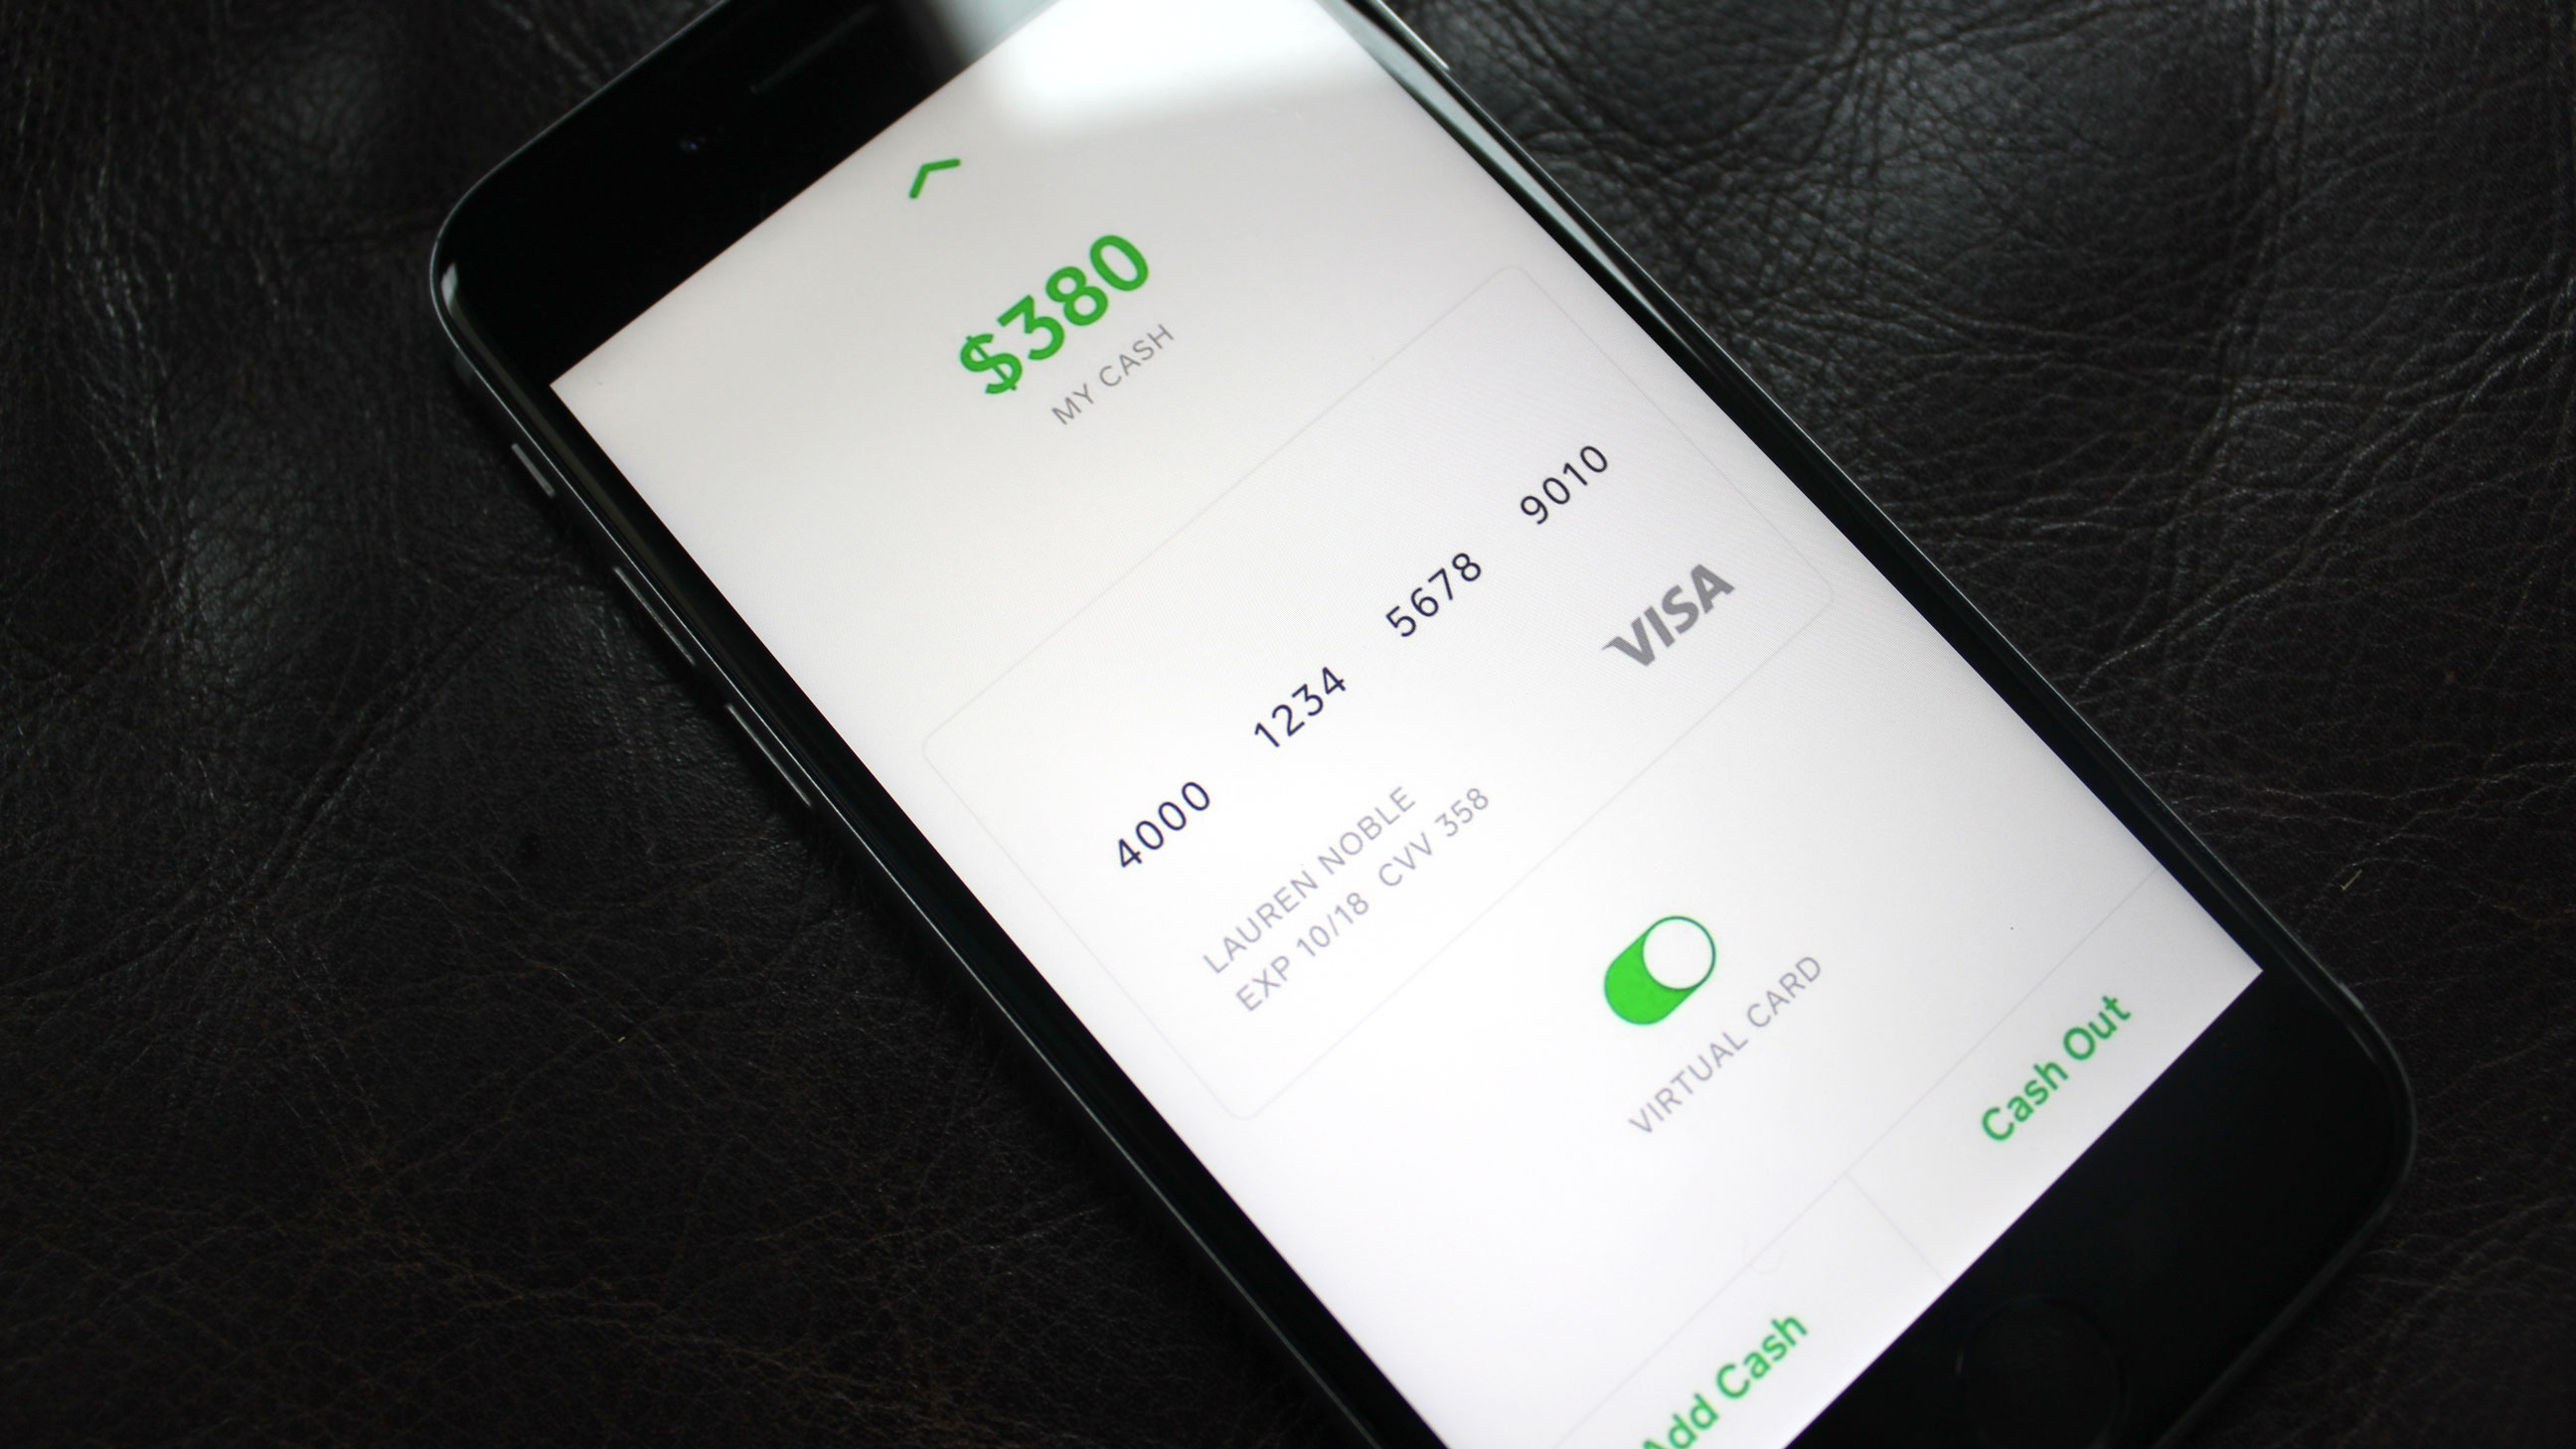 Square Cash users can now spend their balance with a virtual debit